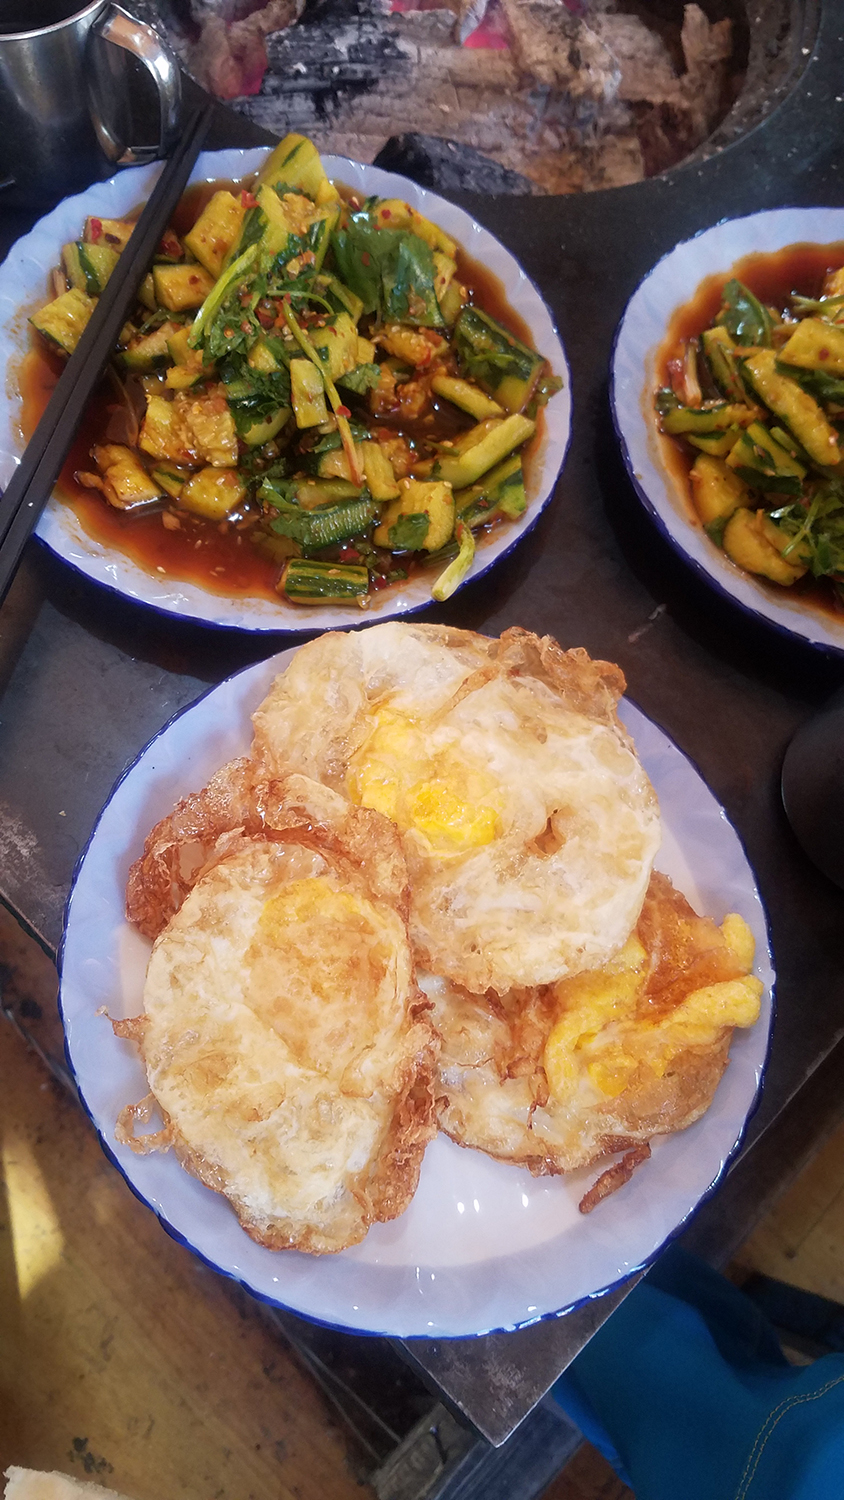 Some eats in the local climber's canteen, Shiguang Restaurant, Liming Village, Yunnan